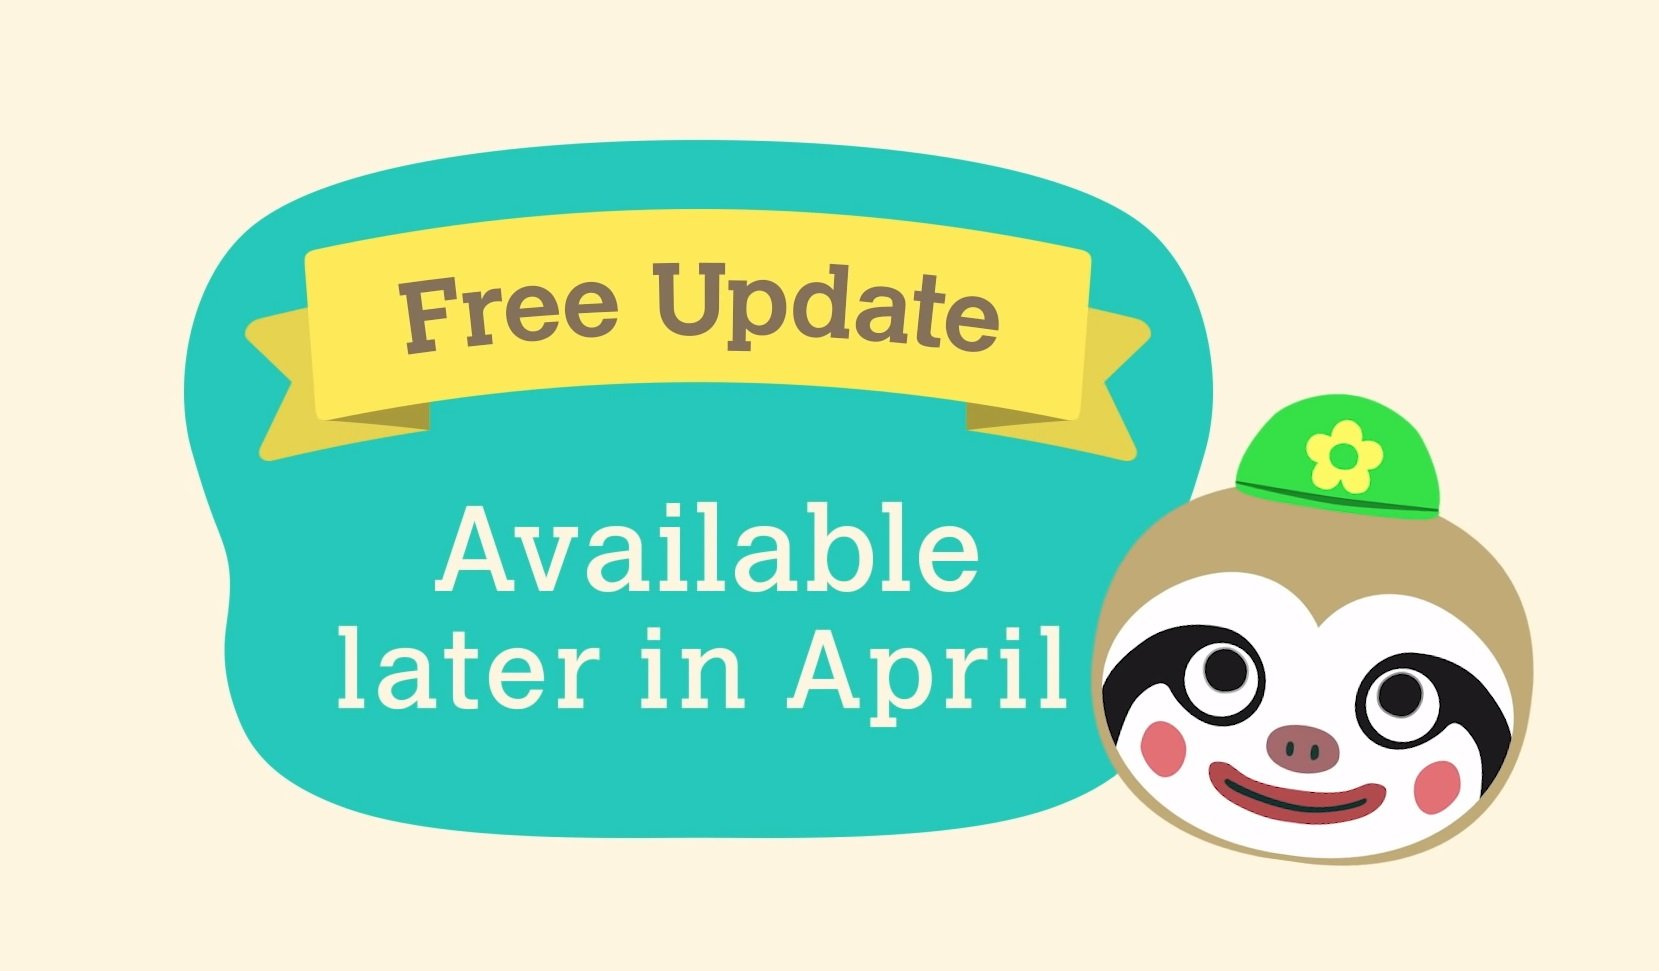 When will Earth Day begin in Animal Crossing: New Horizons?